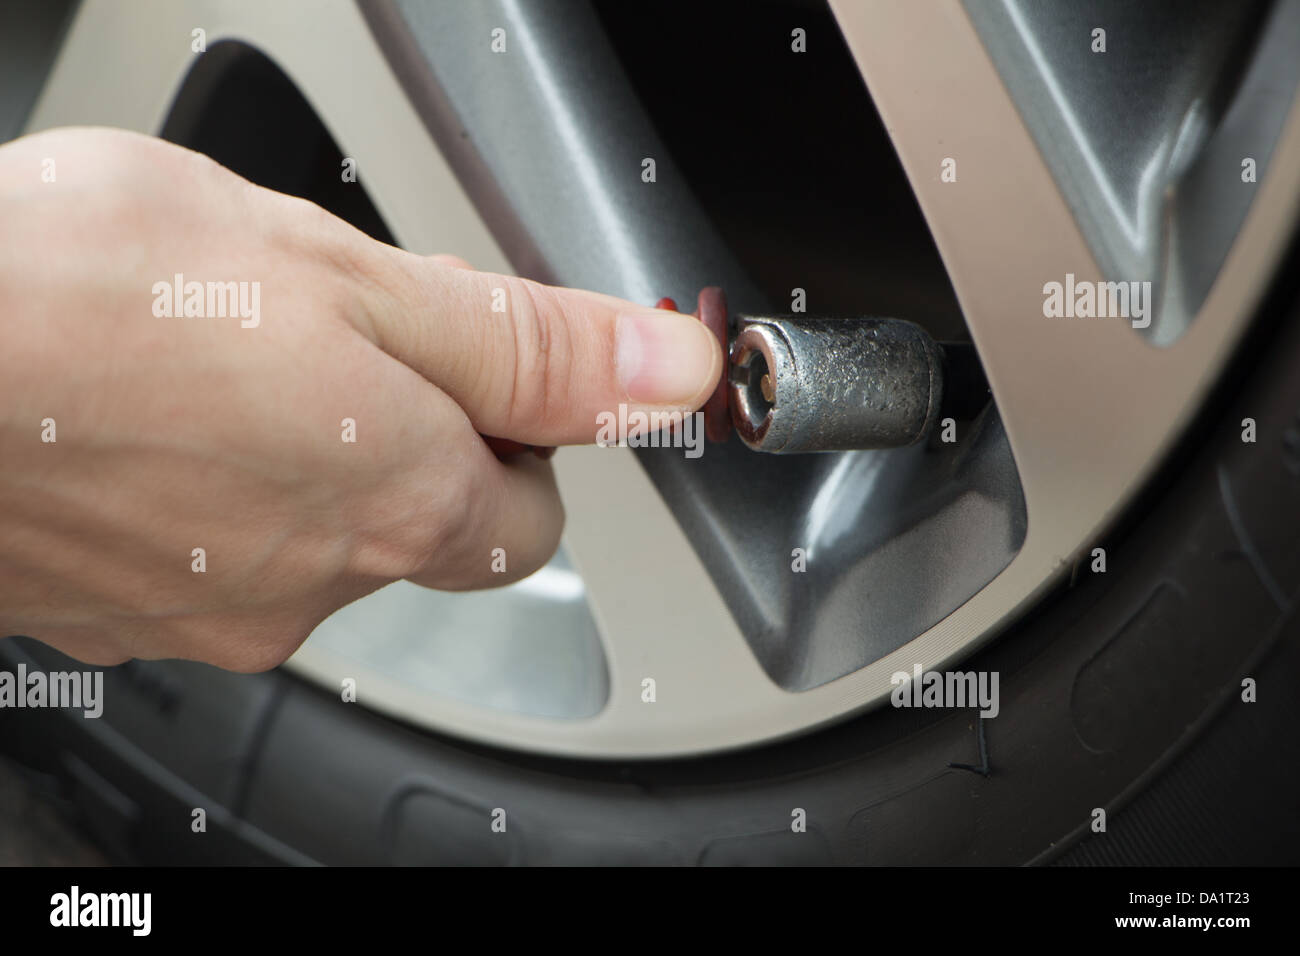 How To Put Air In Car Tires >> Hand Fill Air Into A Car Tire Stock Photo 57818491 Alamy